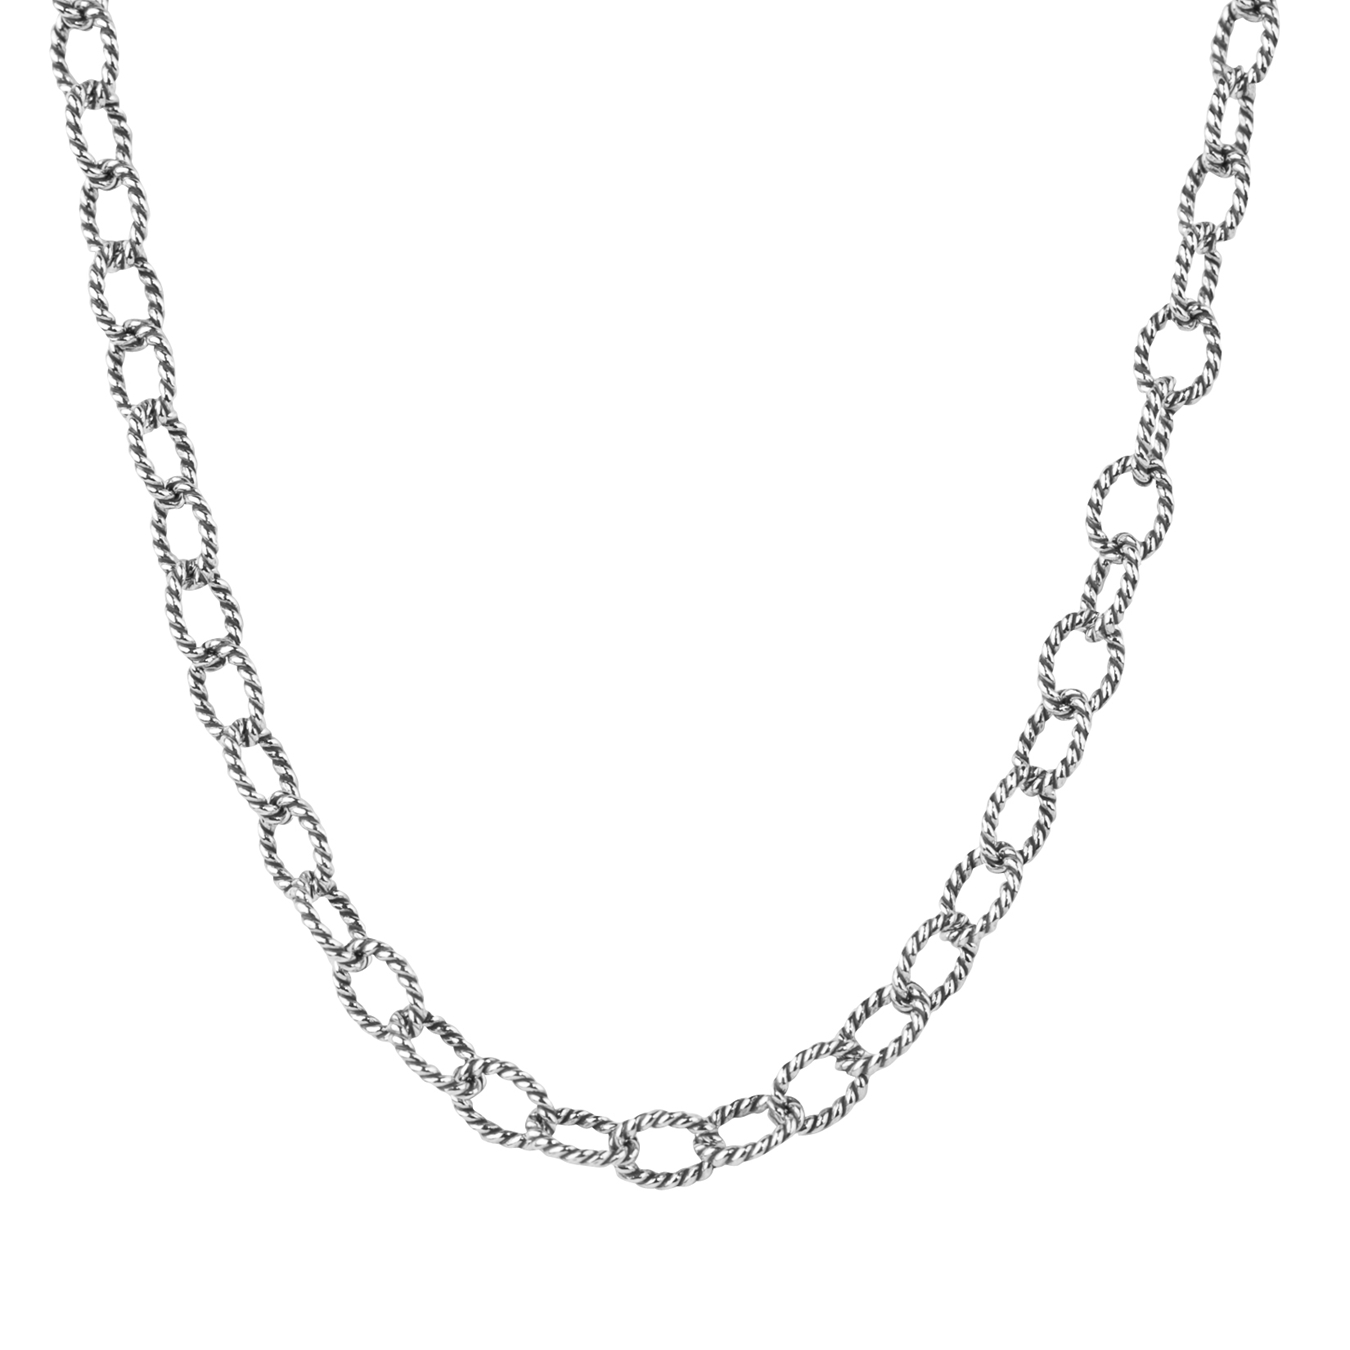 necklace chain sterling silver 16 twisted rope chain necklace dcxmokb